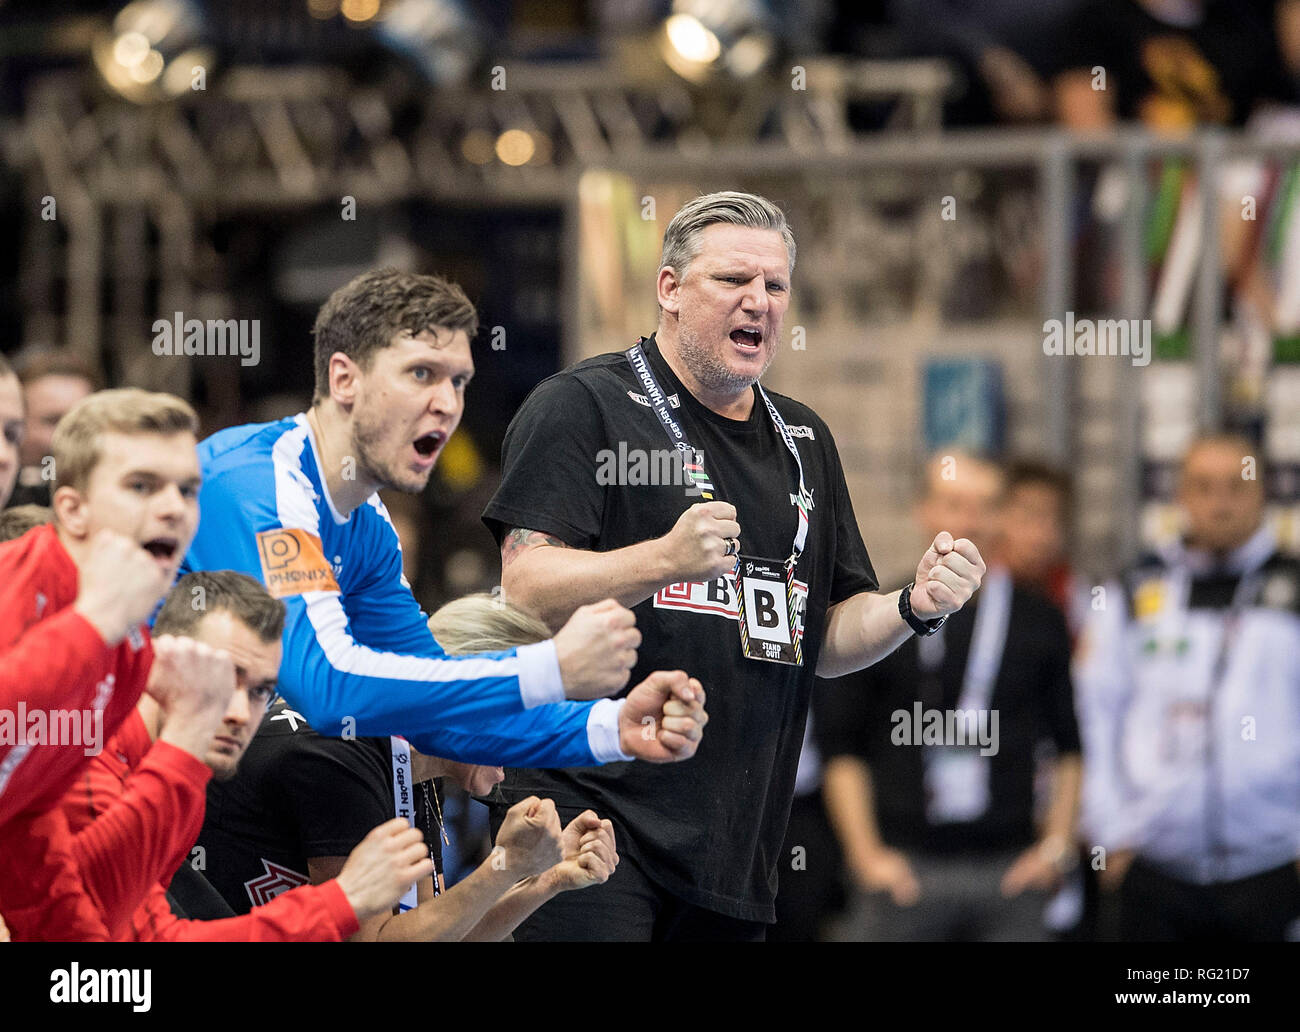 Hamburg, Deutschland. 25th Jan, 2019. jubilation of the Bank of DEN with coach Nikolaj JACOBSEN (DEN), goalkeeper Niklas LANDIN (DEN), semi-finalist France (FRA) - Denmark (DEN), on 25.01.2019 in Hamburg/Germany. Handball World Cup 2019, from 10.01. - 27.01.2019 in Germany/Denmark. | usage worldwide Credit: dpa/Alamy Live News Stock Photo